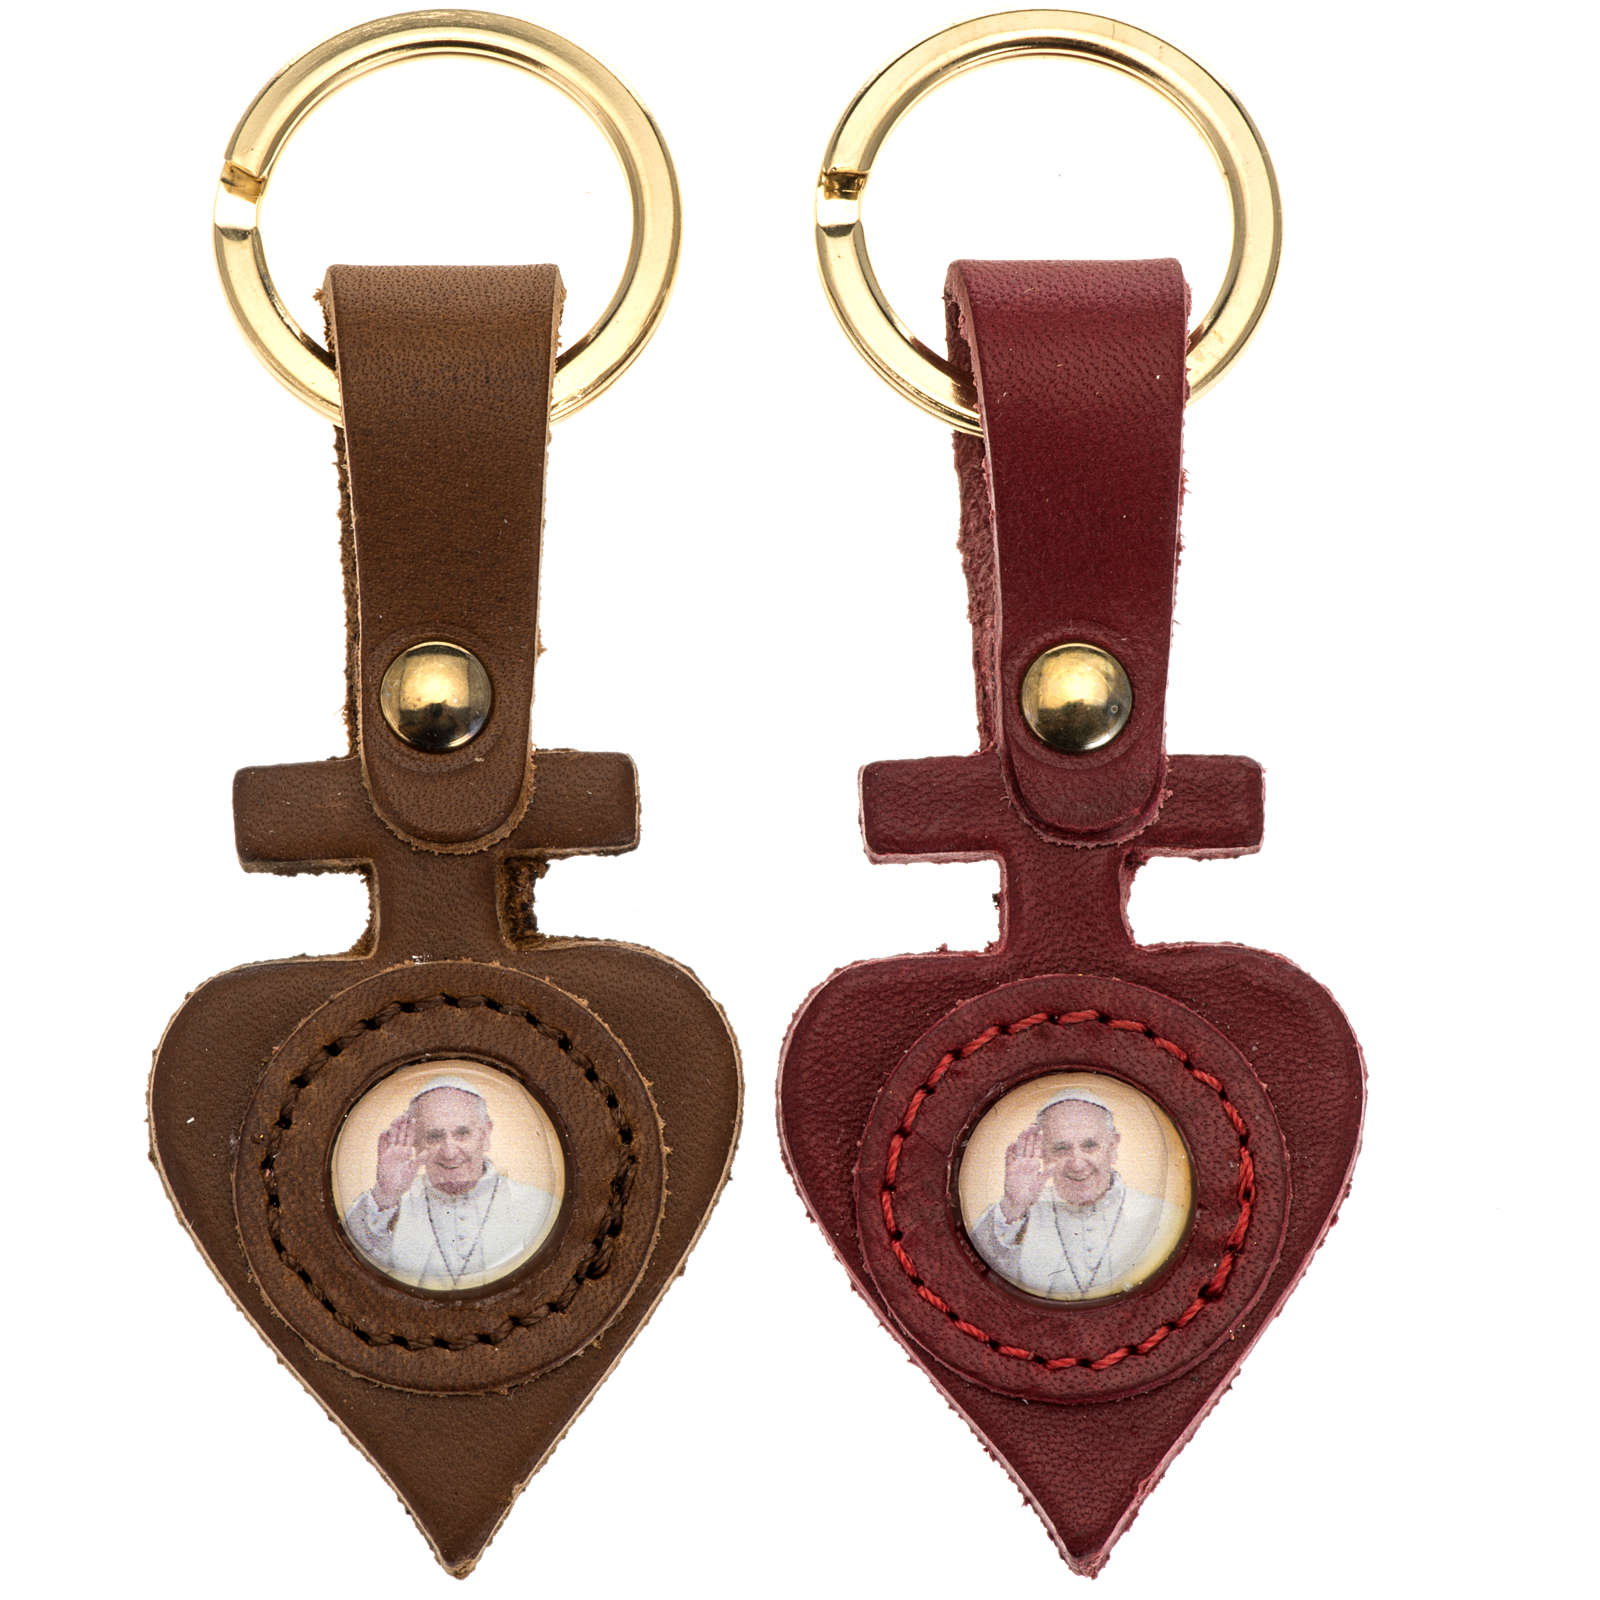 Pope Francis key ring in leather heart shaped 3